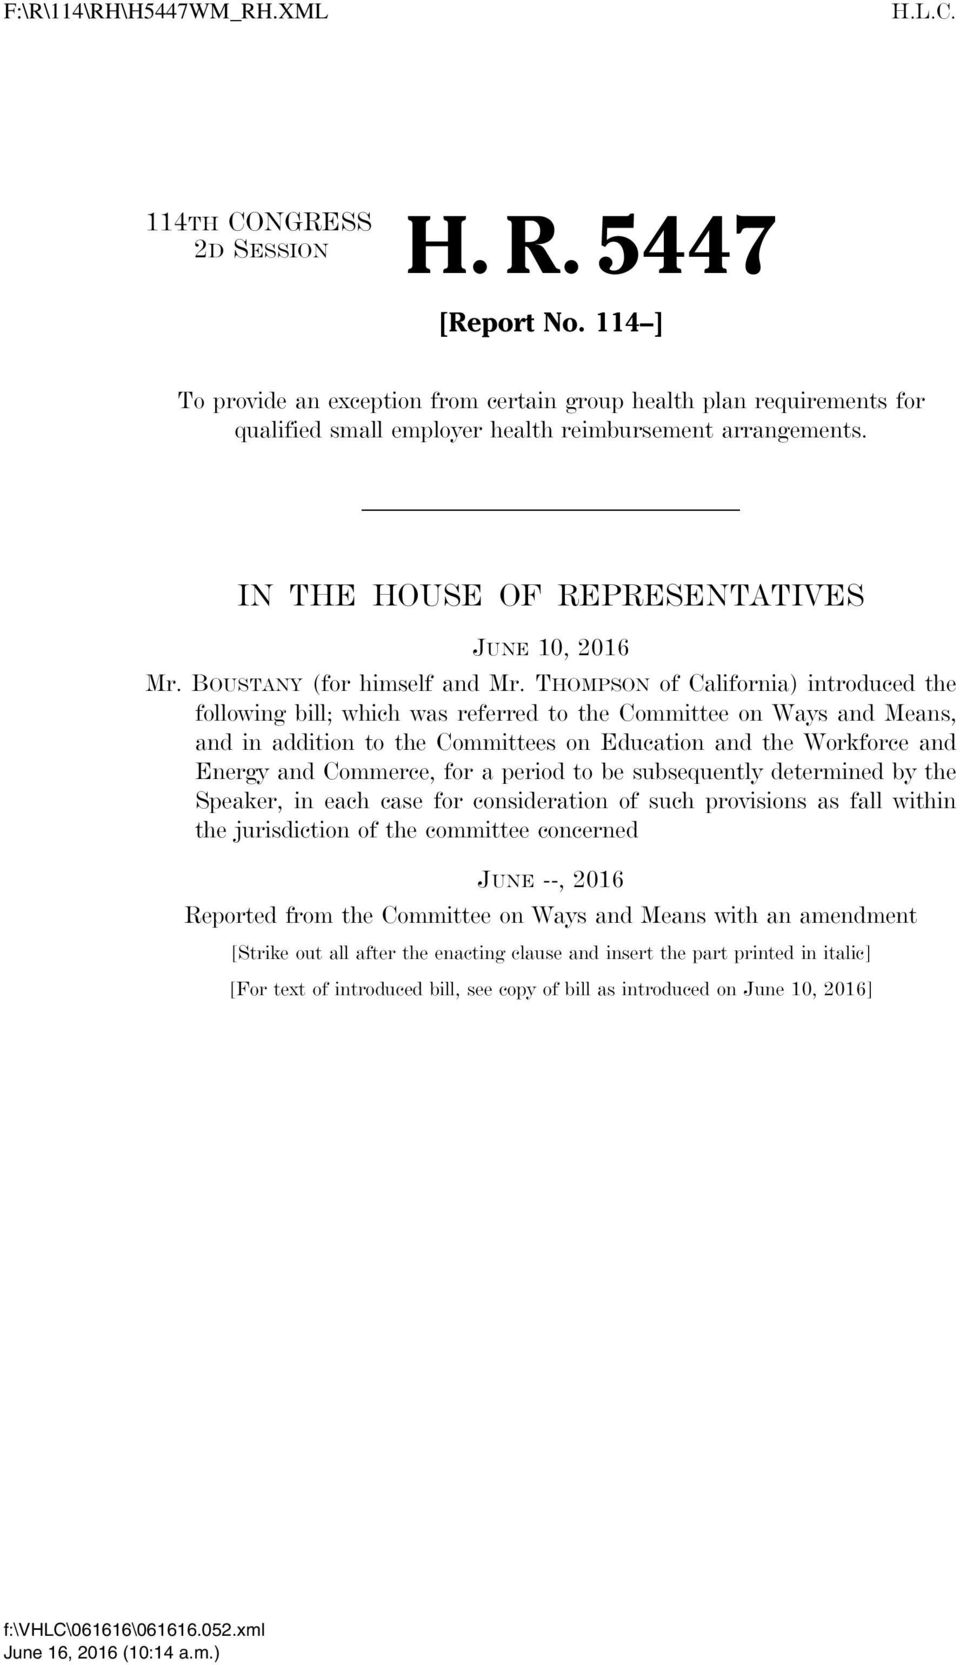 THOMPSON of California) introduced the following bill; which was referred to the Committee on Ways and Means, and in addition to the Committees on Education and the Workforce and Energy and Commerce,